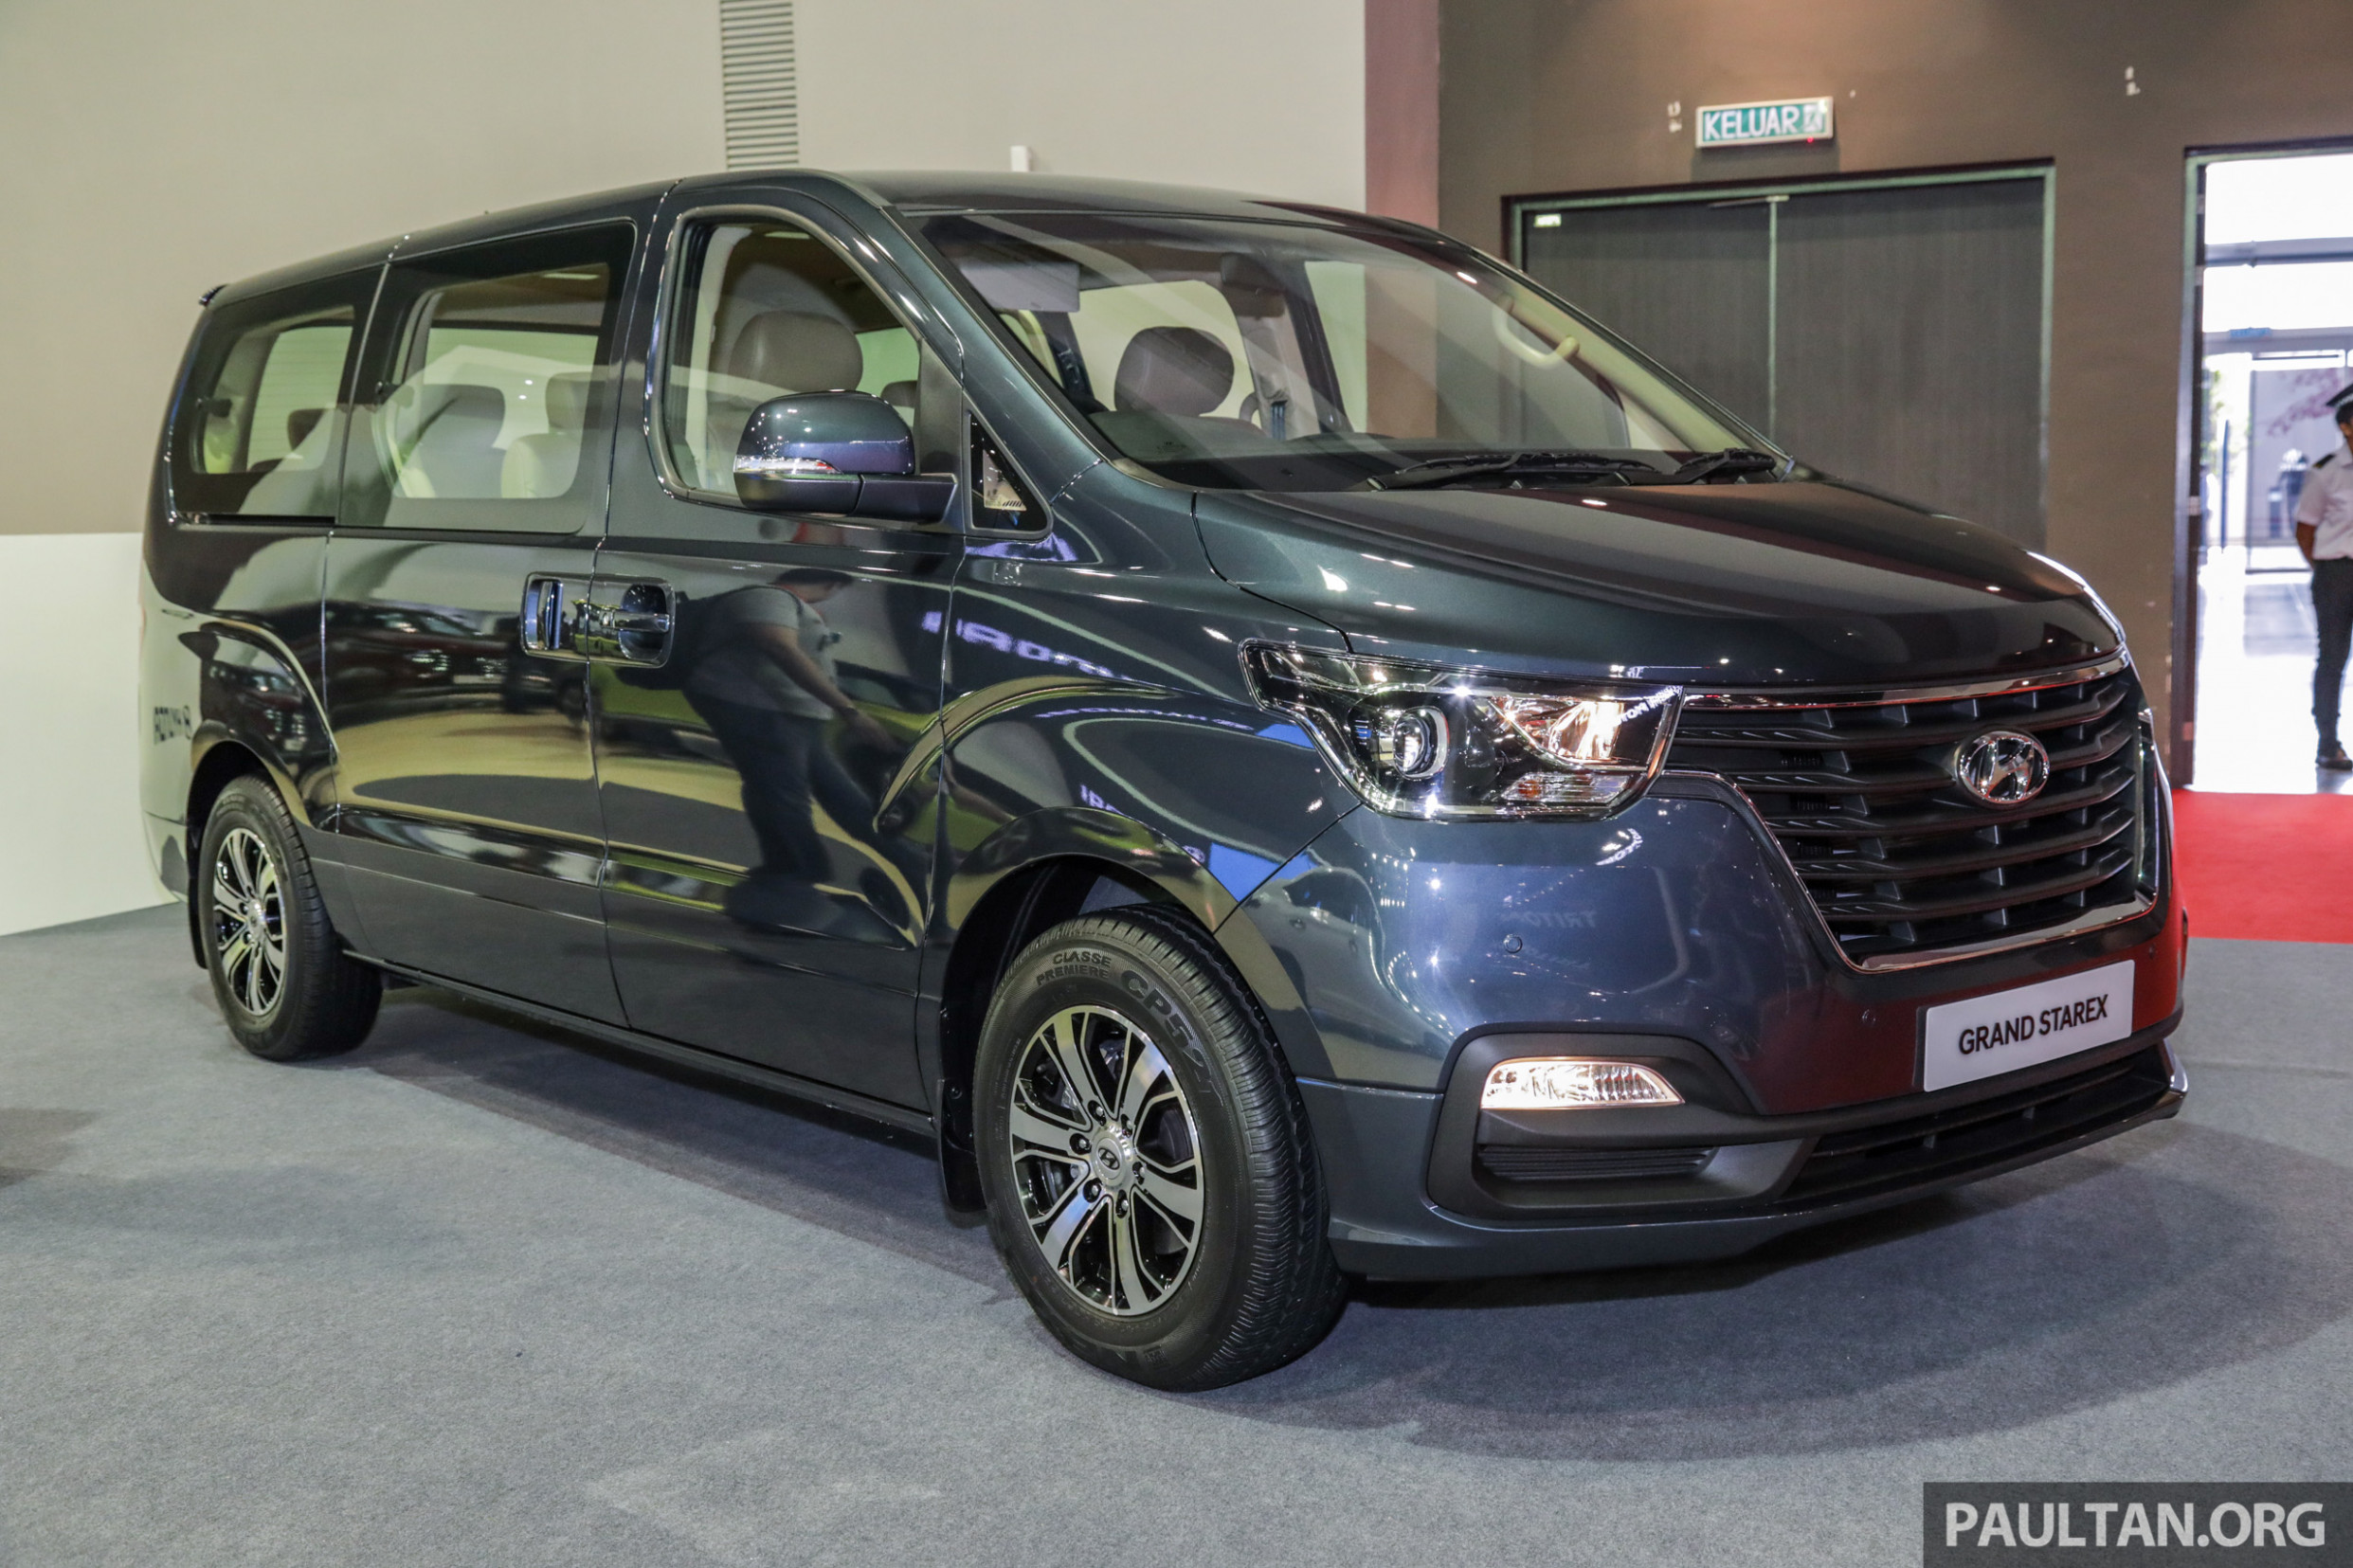 Hyundai Starex facelift price up by RM11k - RM11,11